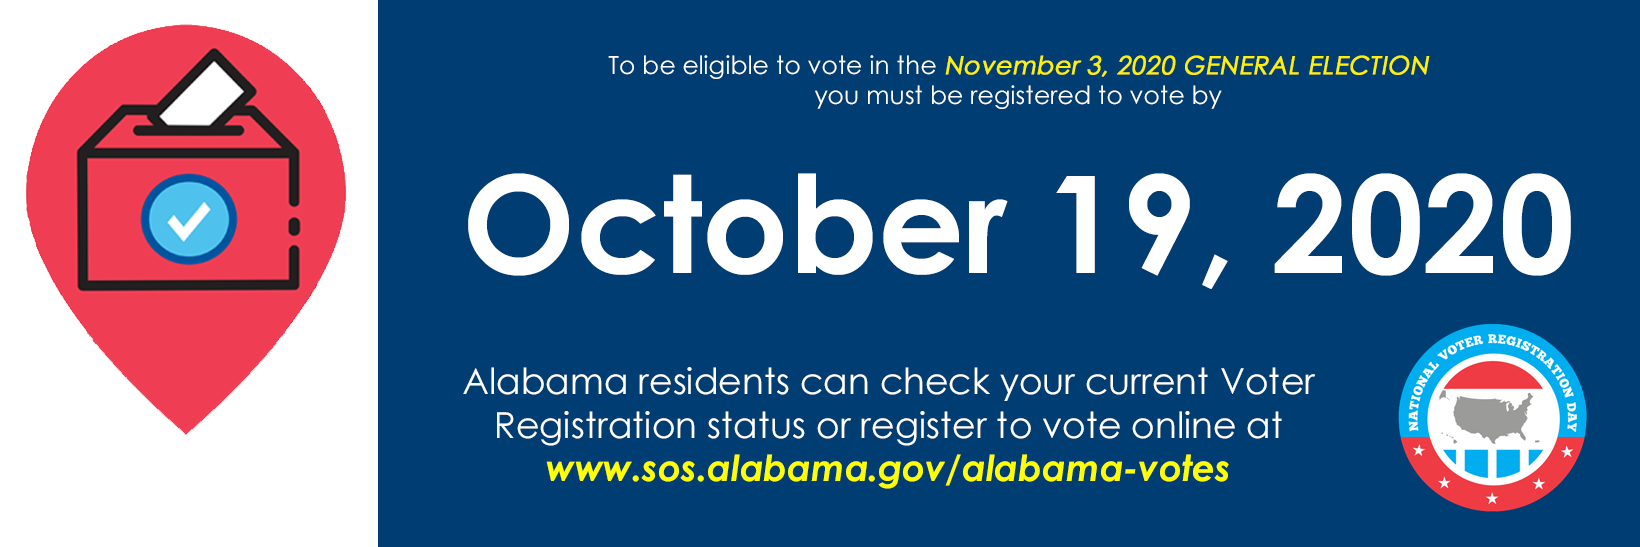 To be eligible to vote in the November 3, 2020 General Election, you must register to vote by October 19, 2020. Check your voter registration status or register to vote online at www.sos.alabama.gov/alabama-votes